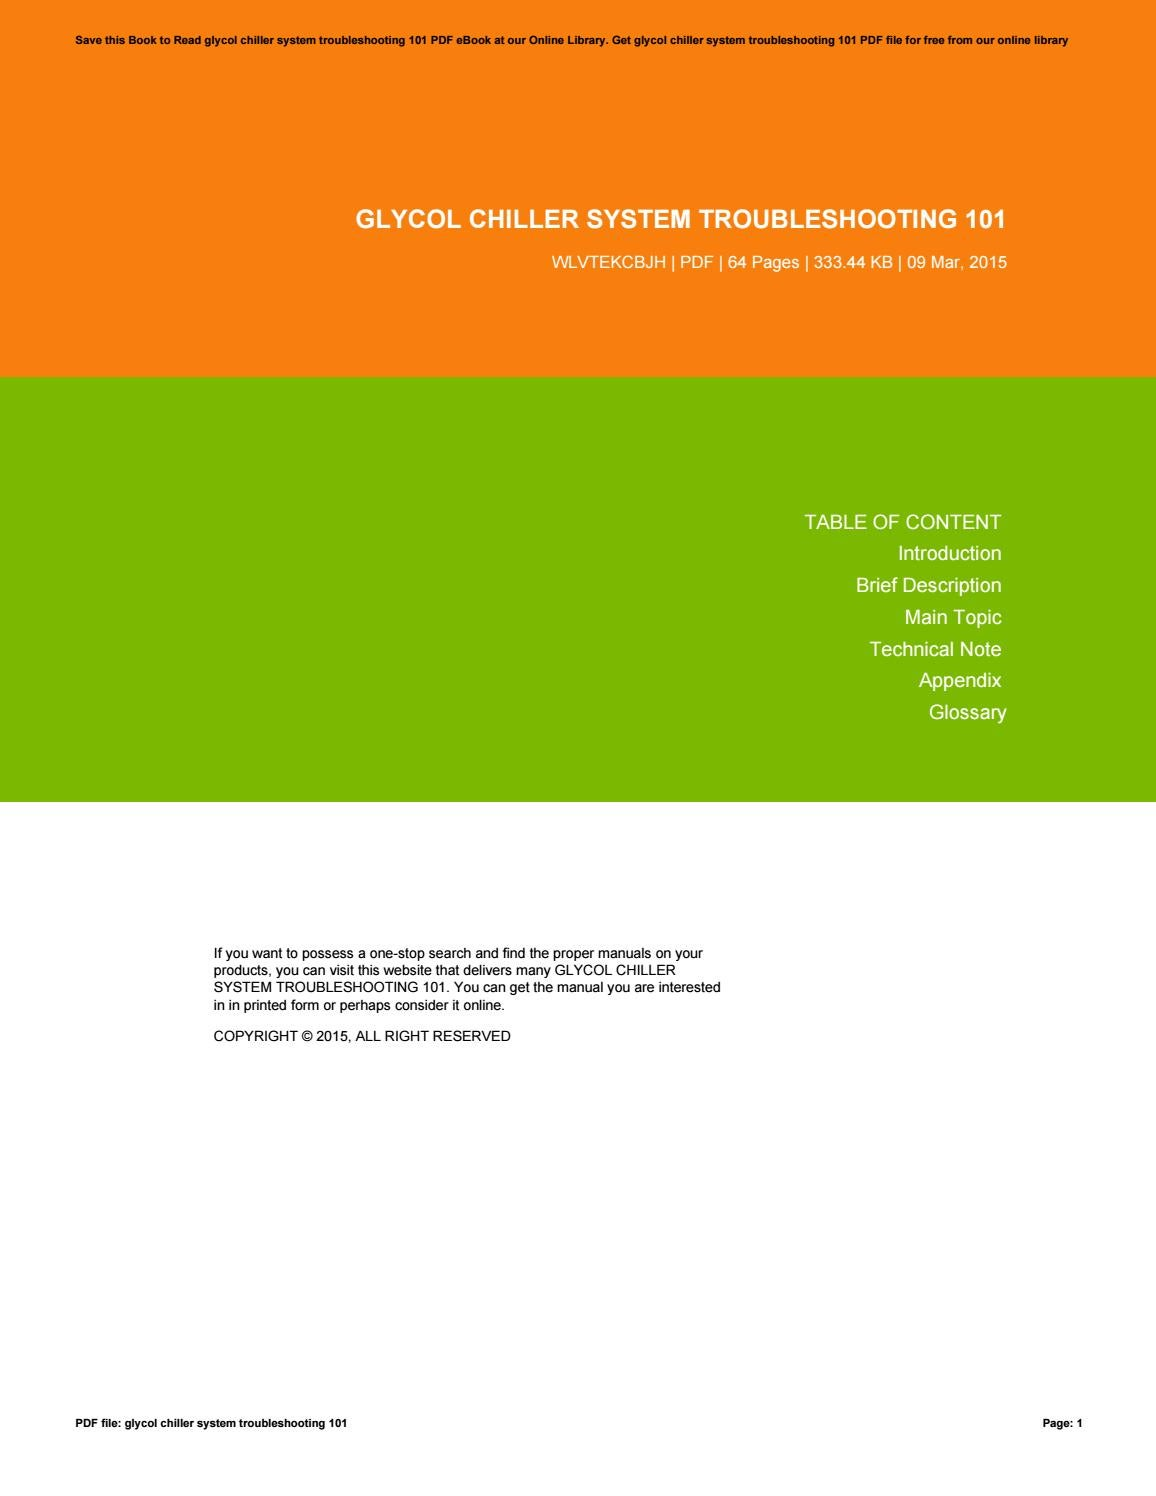 Glycol chiller system troubleshooting 101 by emilydoyle3124 issuu sciox Image collections